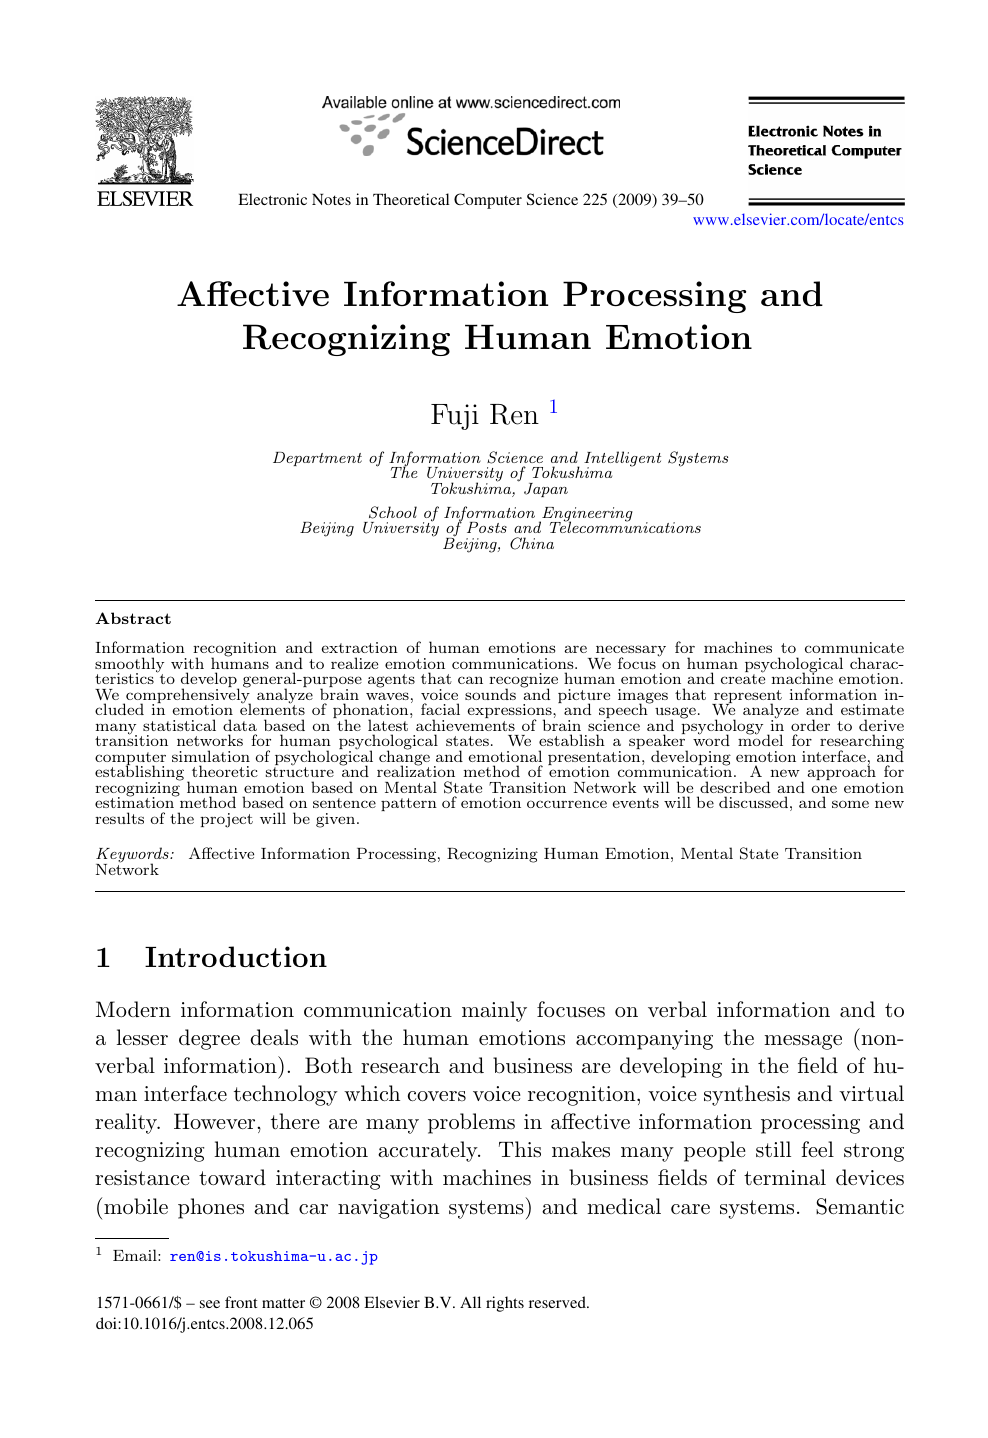 Affective Information Processing and Recognizing Human